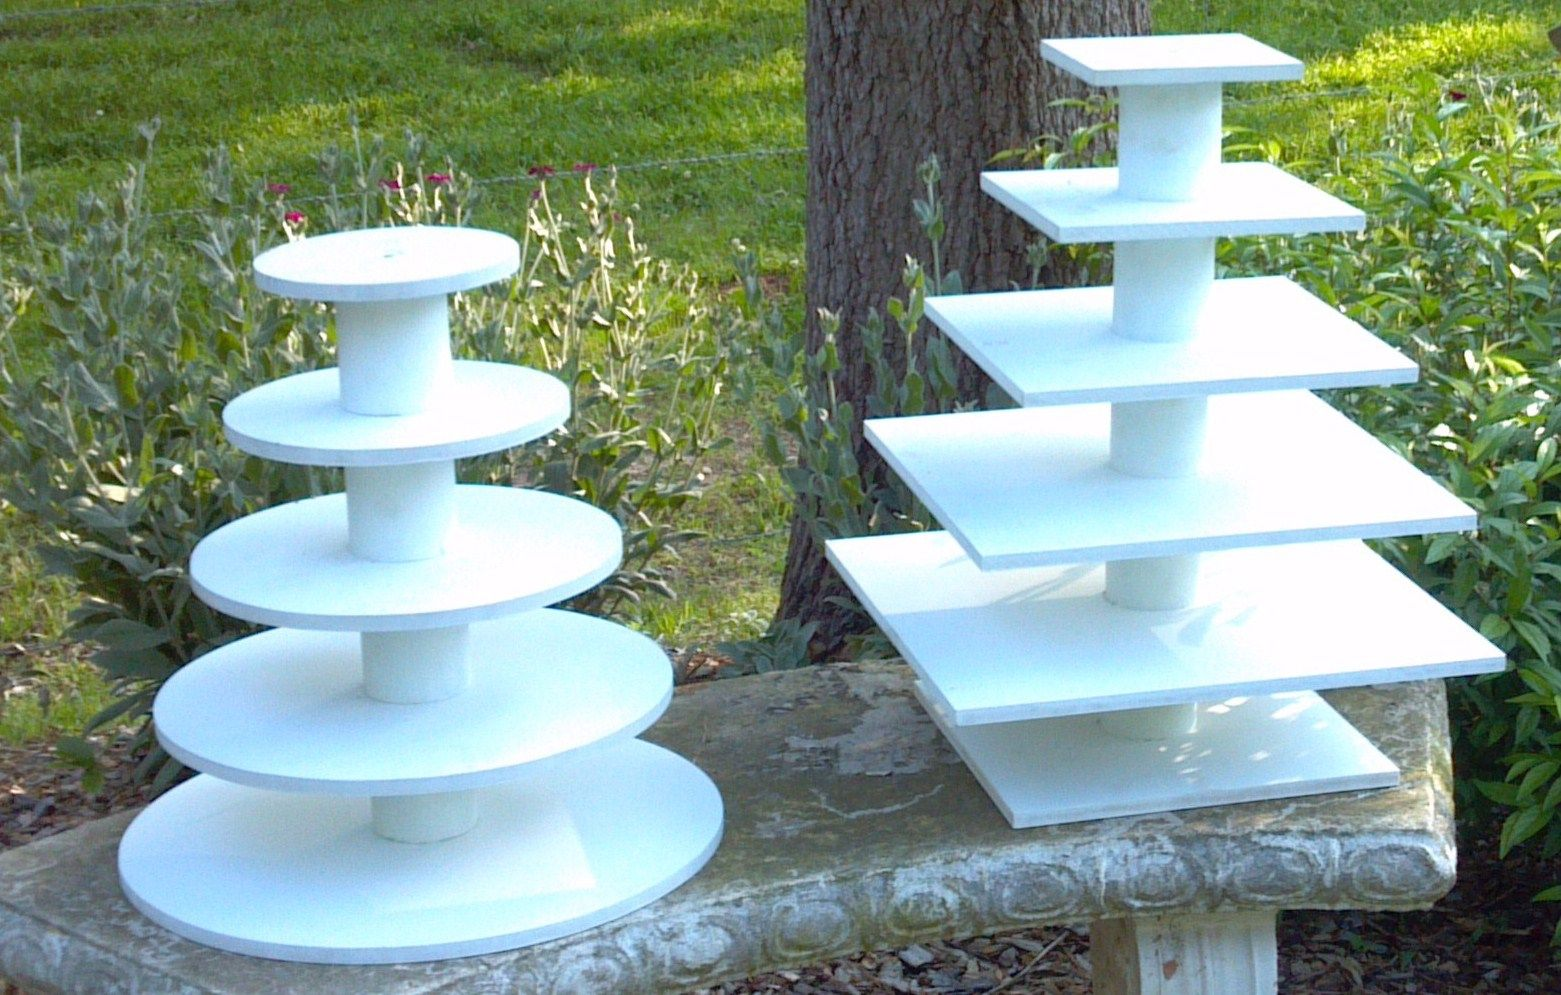 Large Cupcake Stand Holds Up To 75 100 Cupcakes Stands Can Be